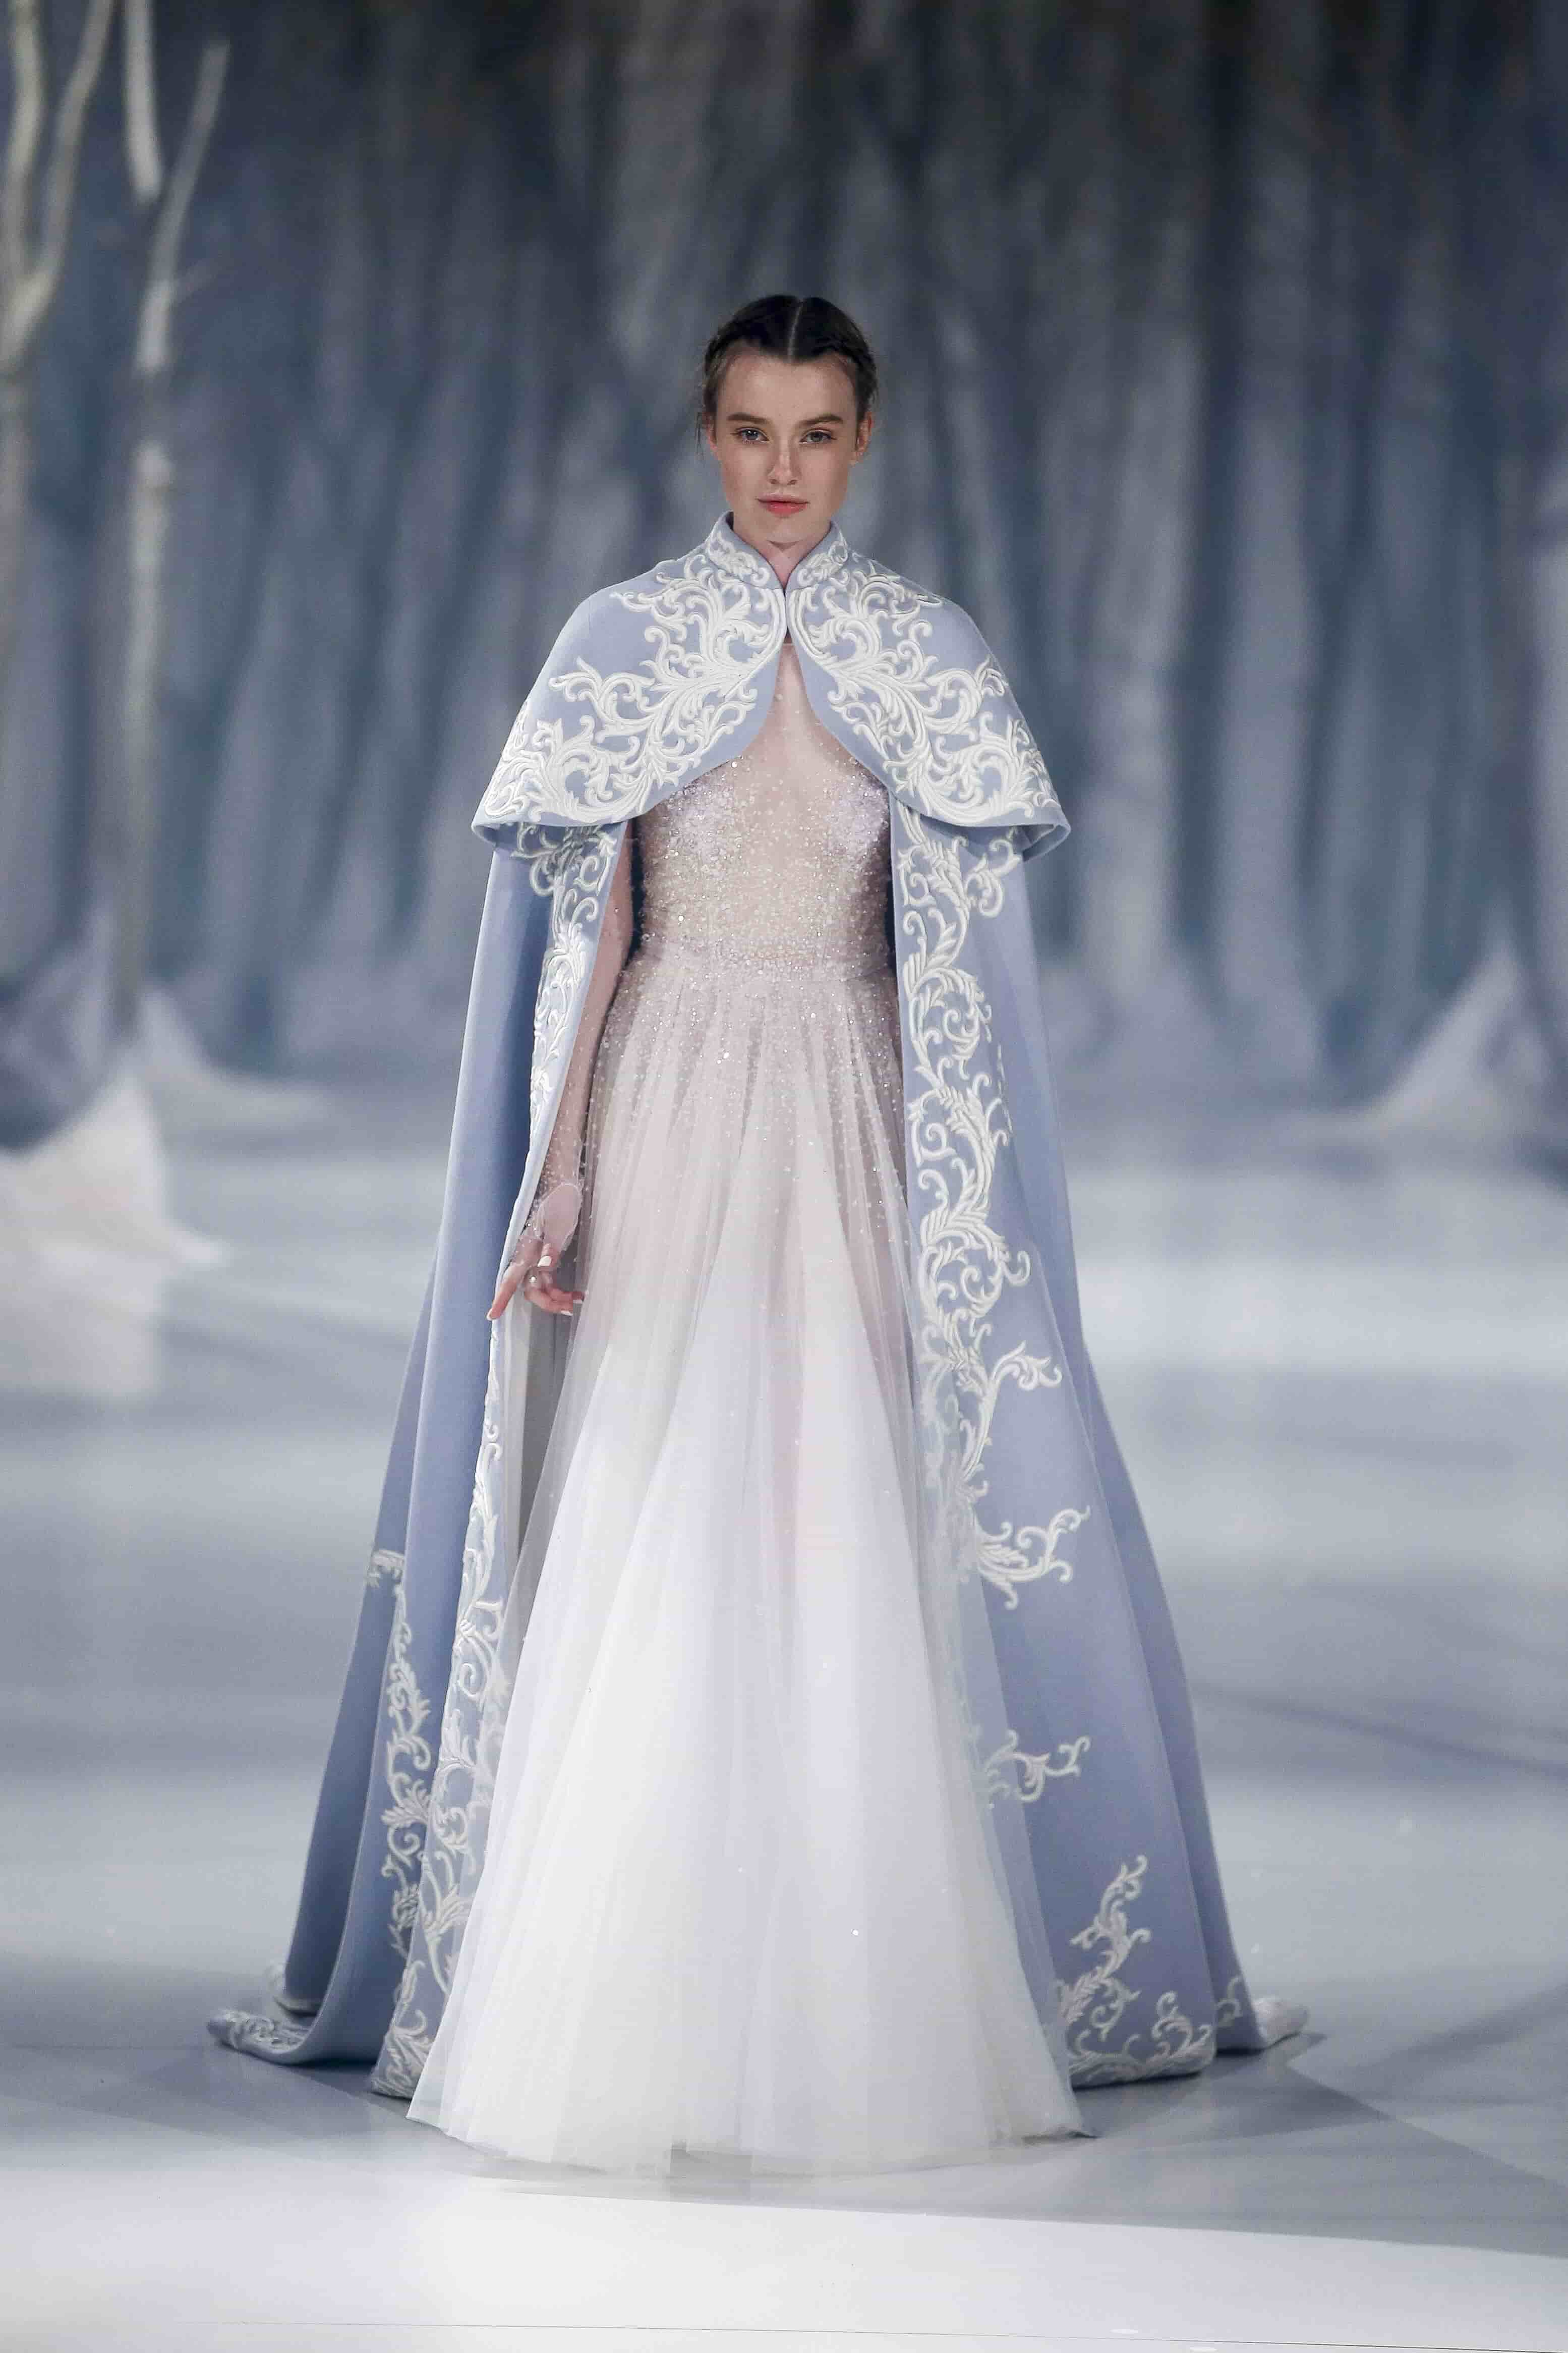 Paolo Sebastian's Fall Winter 2016 Collection Reminds Us